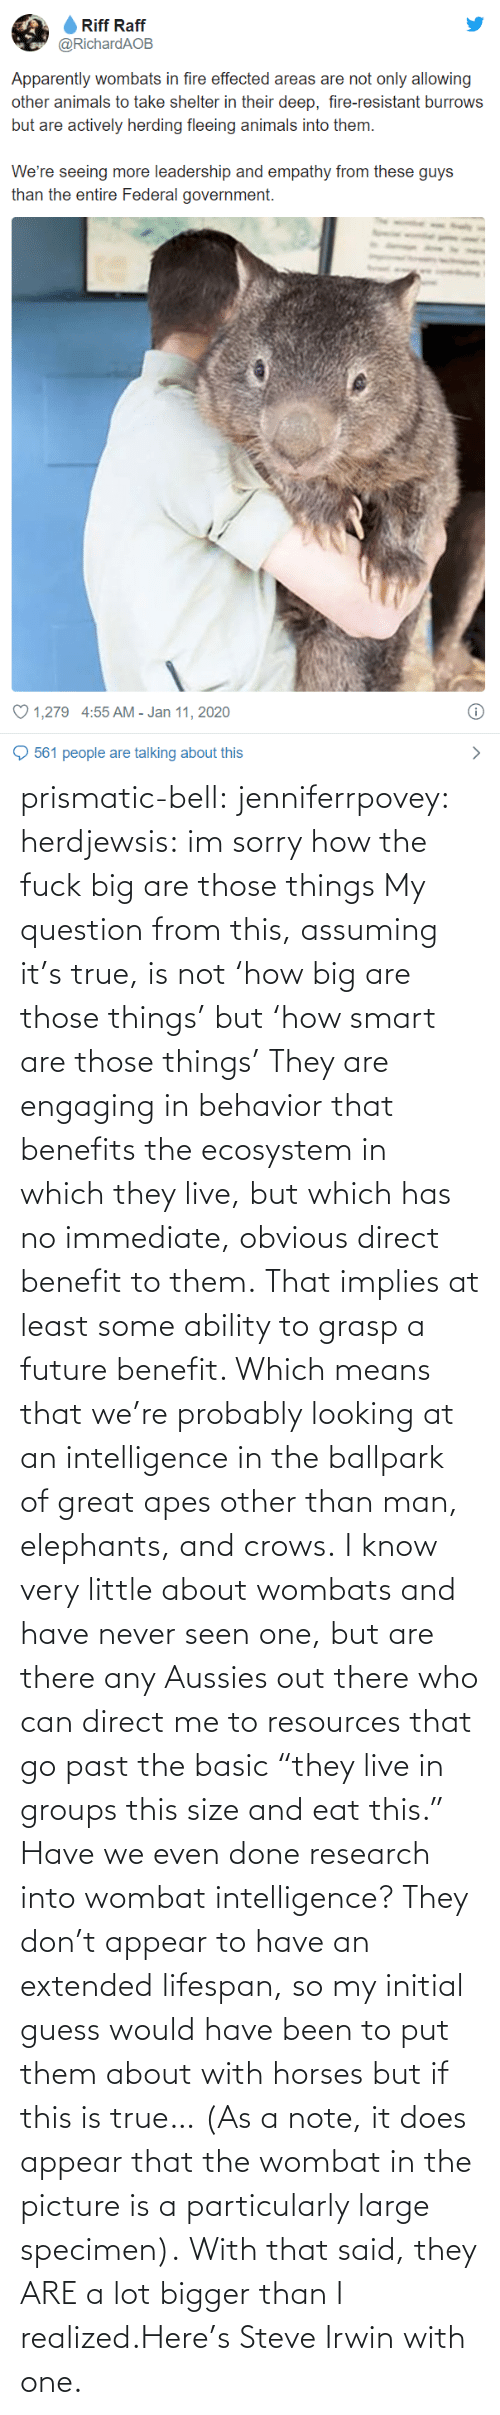 "appear: prismatic-bell:  jenniferrpovey: herdjewsis: im sorry how the fuck big are those things My question from this, assuming it's true, is not 'how big are those things' but 'how smart are those things' They are engaging in behavior that benefits the ecosystem in which they live, but which has no immediate, obvious direct benefit to them. That implies at least some ability to grasp a future benefit. Which means that we're probably looking at an intelligence in the ballpark of great apes other than man, elephants, and crows. I know very little about wombats and have never seen one, but are there any Aussies out there who can direct me to resources that go past the basic ""they live in groups this size and eat this."" Have we even done research into wombat intelligence? They don't appear to have an extended lifespan, so my initial guess would have been to put them about with horses but if this is true… (As a note, it does appear that the wombat in the picture is a particularly large specimen).  With that said, they ARE a lot bigger than I realized.Here's Steve Irwin with one."